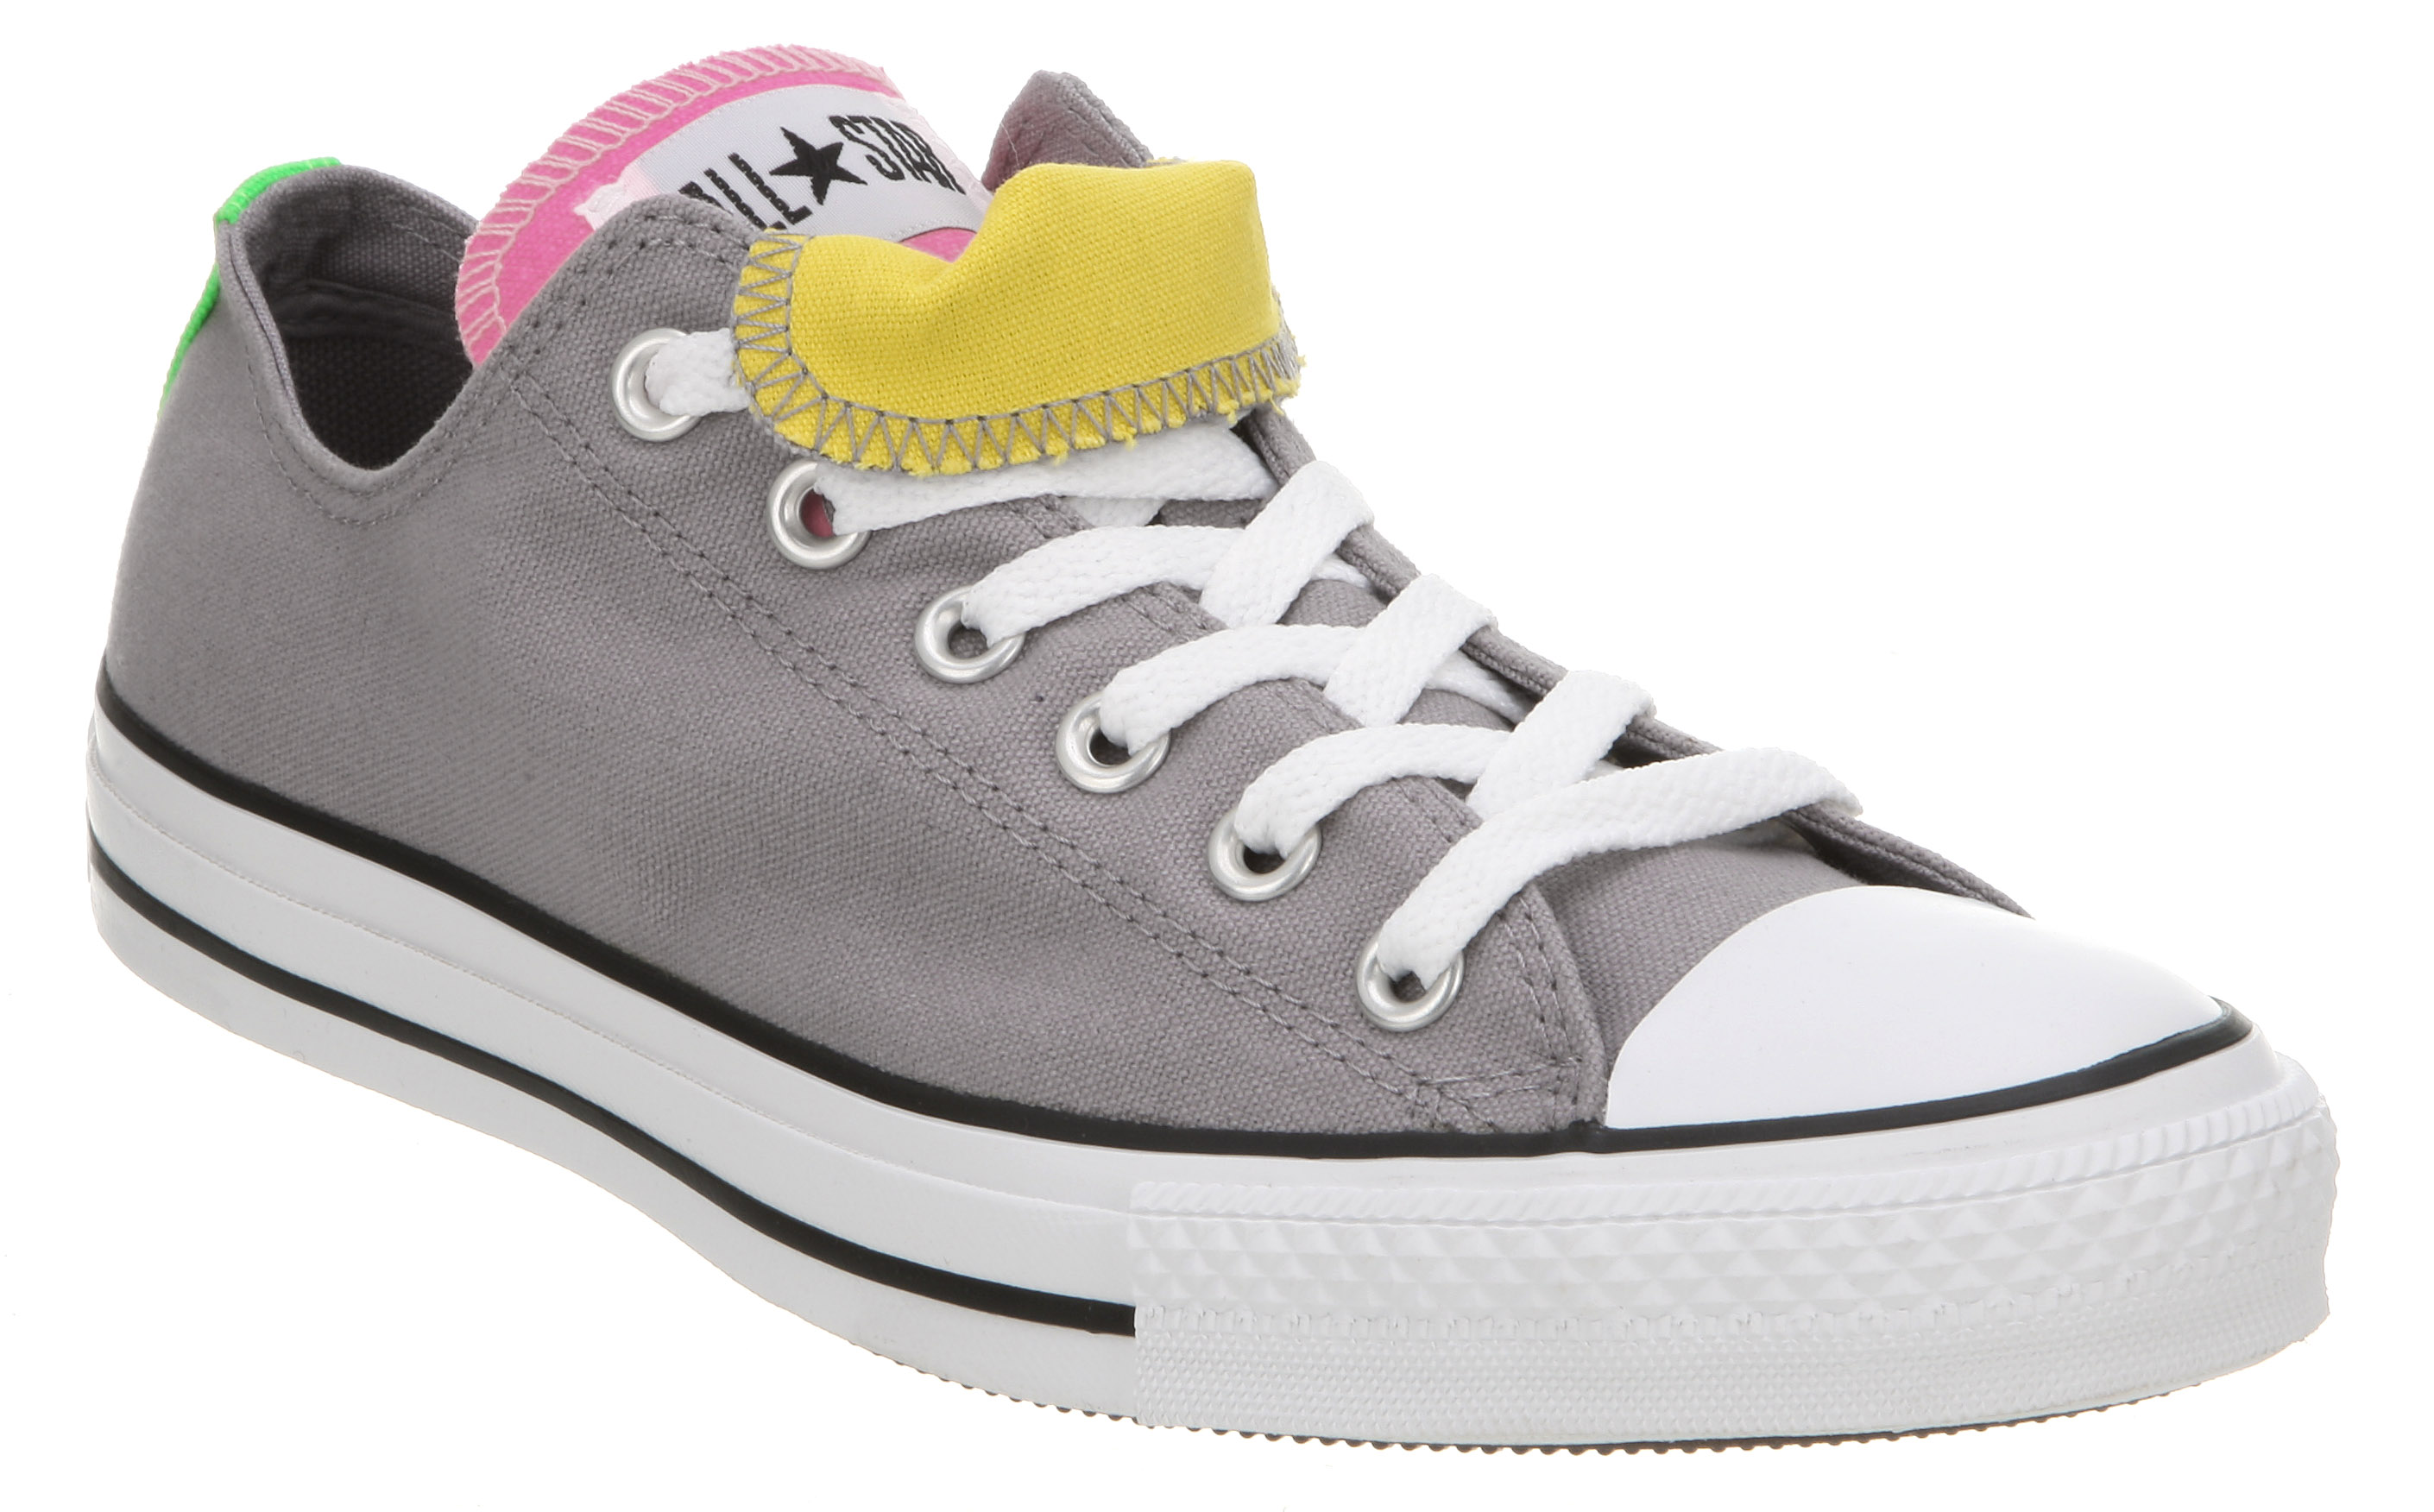 Converse All Star Ox Low Double Tongue Grey pink yellow Canvas ... 8cf80b15c